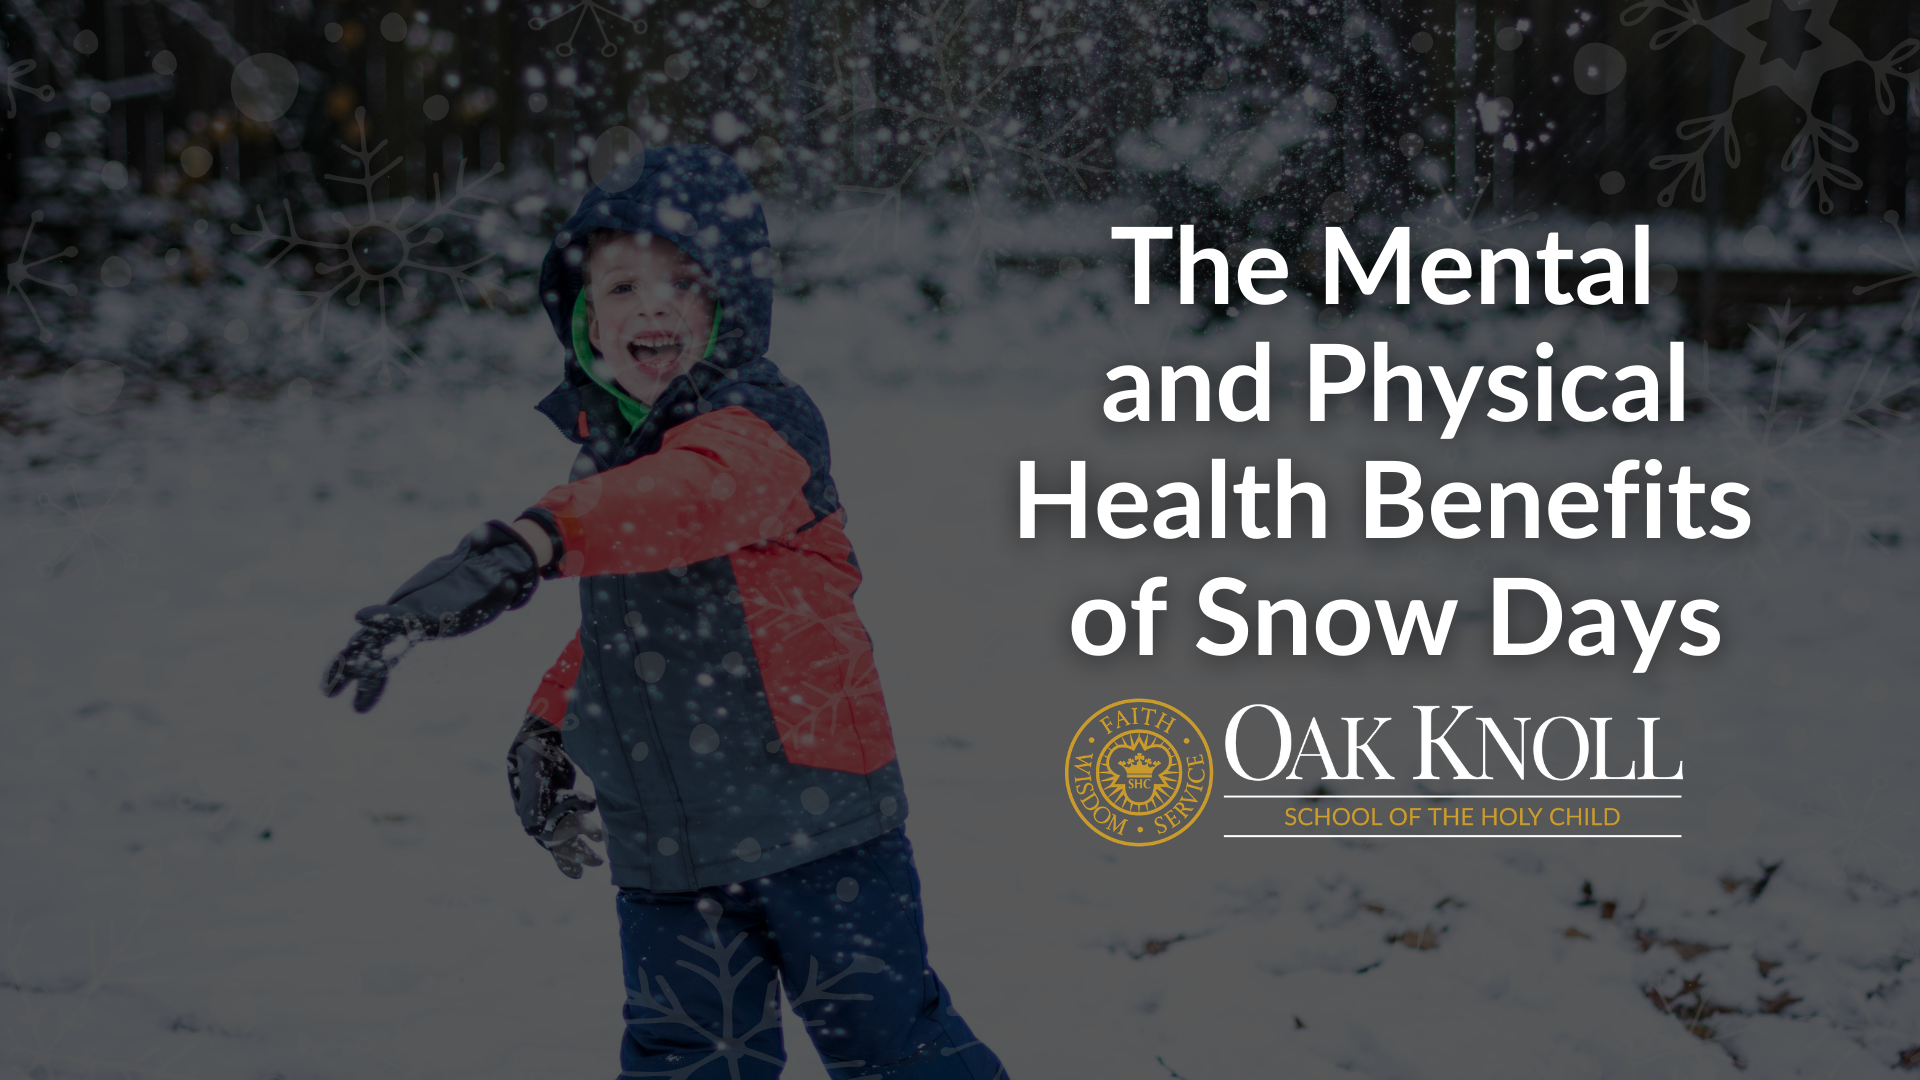 The Mental and Physical Health Benefits of Snow Days